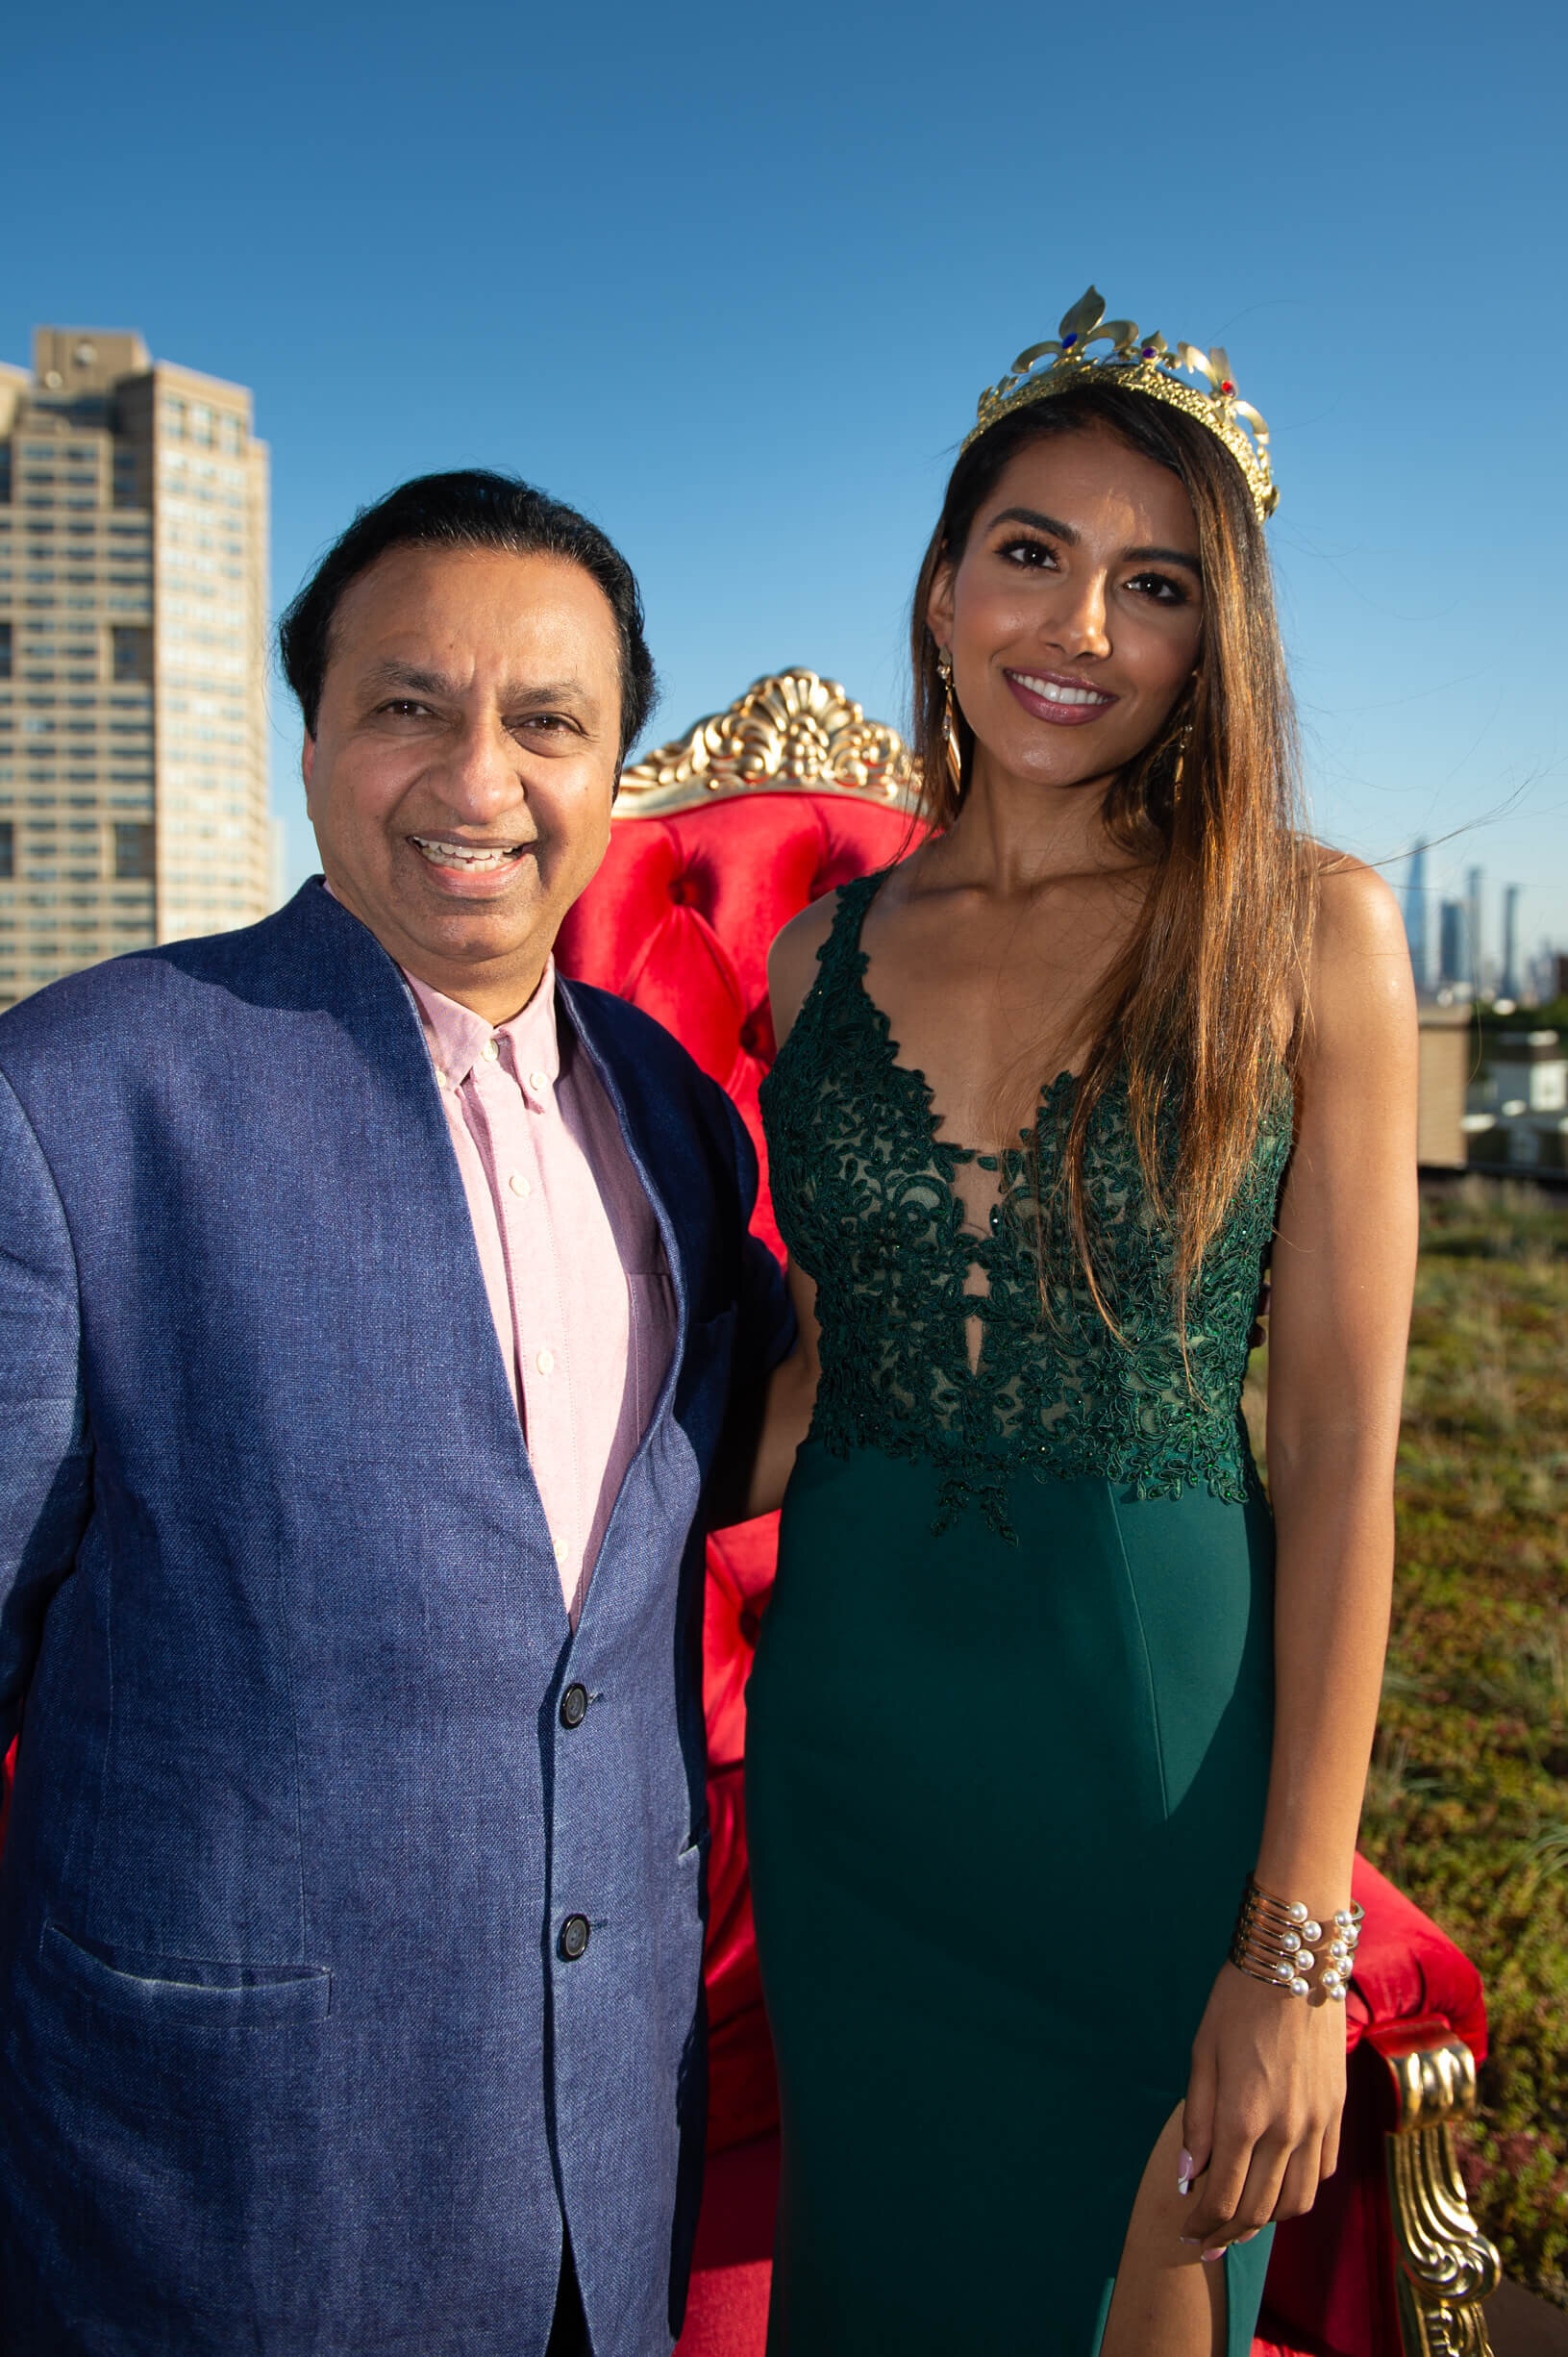 A fabulous evening celebrating the Grand Opening of Green Roof Condominium. Thank you for taking time from your busy schedule to join NRIA for Green Roof's grand opening celebration. As a valued friend and investor, it was such an honor to share this moment with you and toast our joint success.